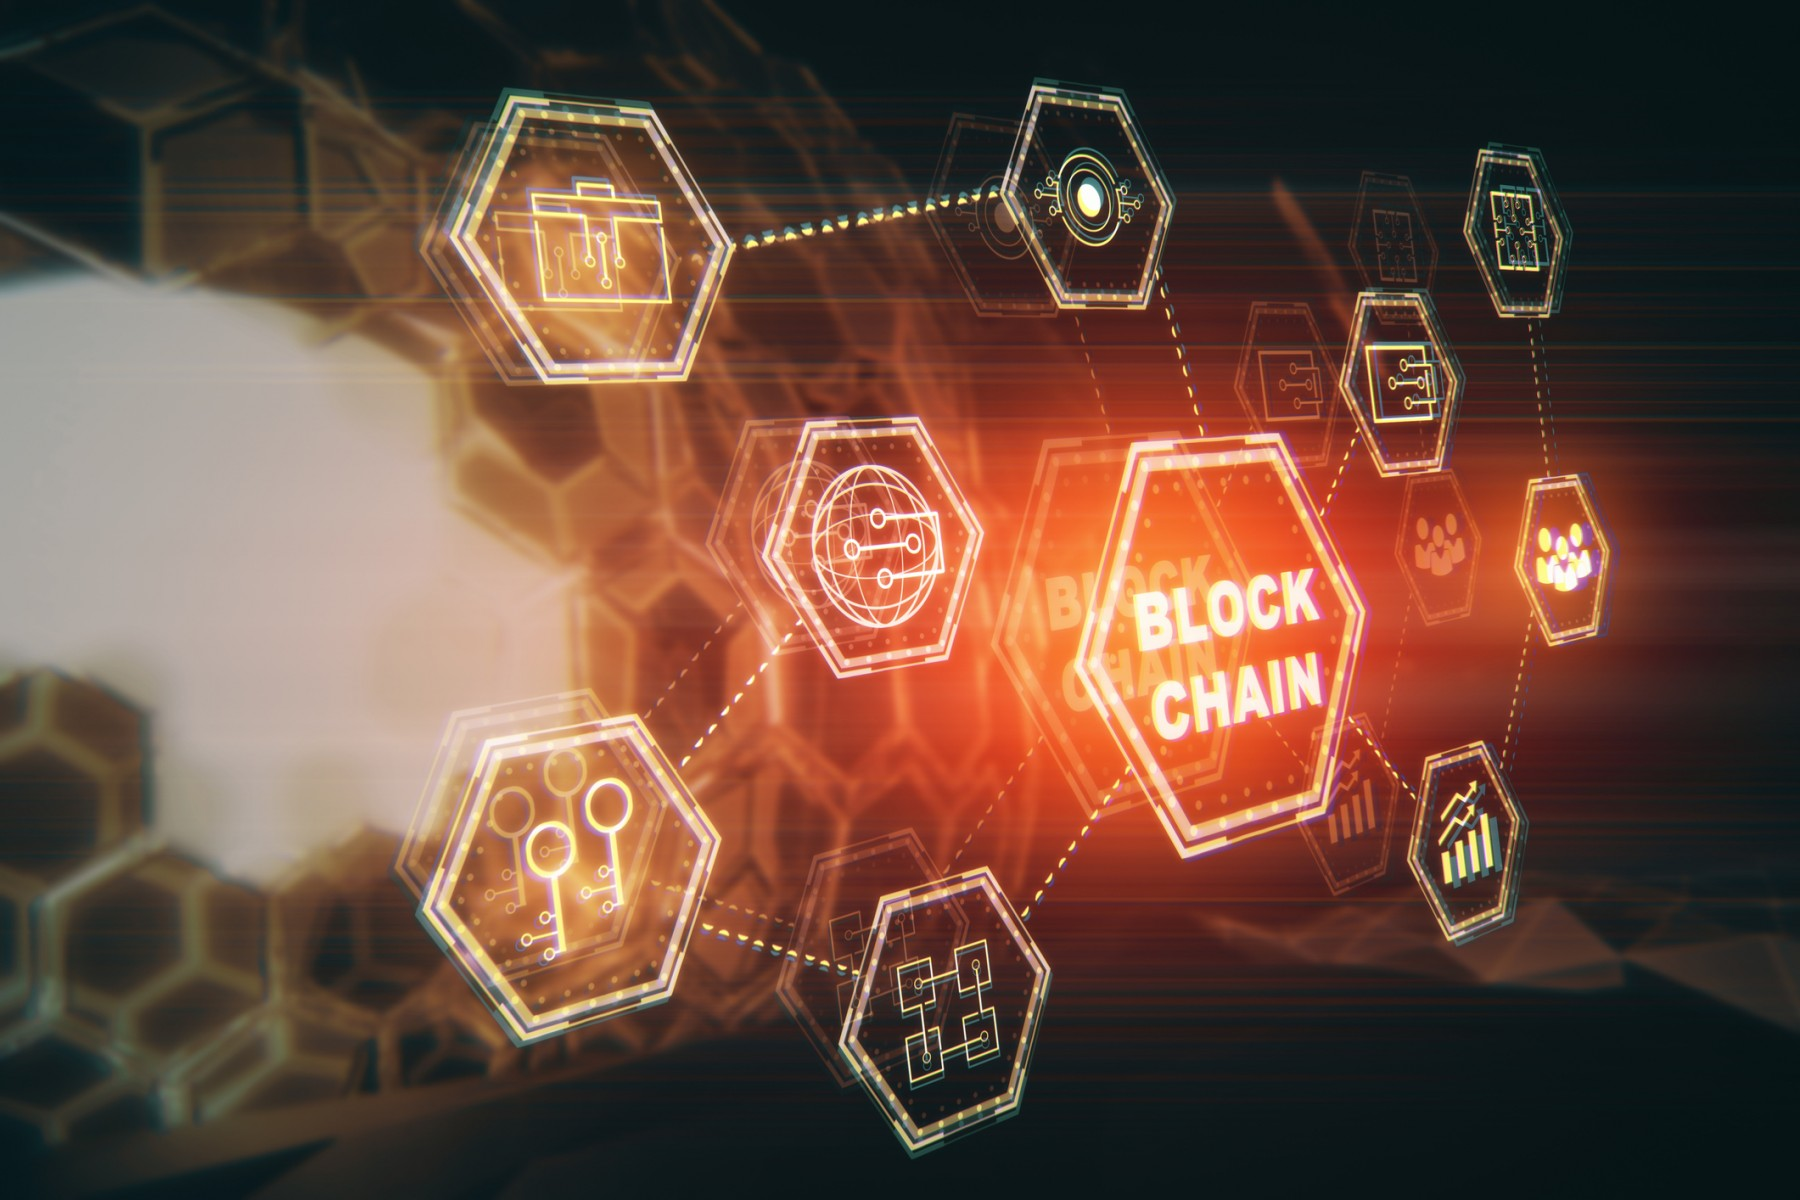 State Farm® is exploring how blockchain technology can benefit customers .